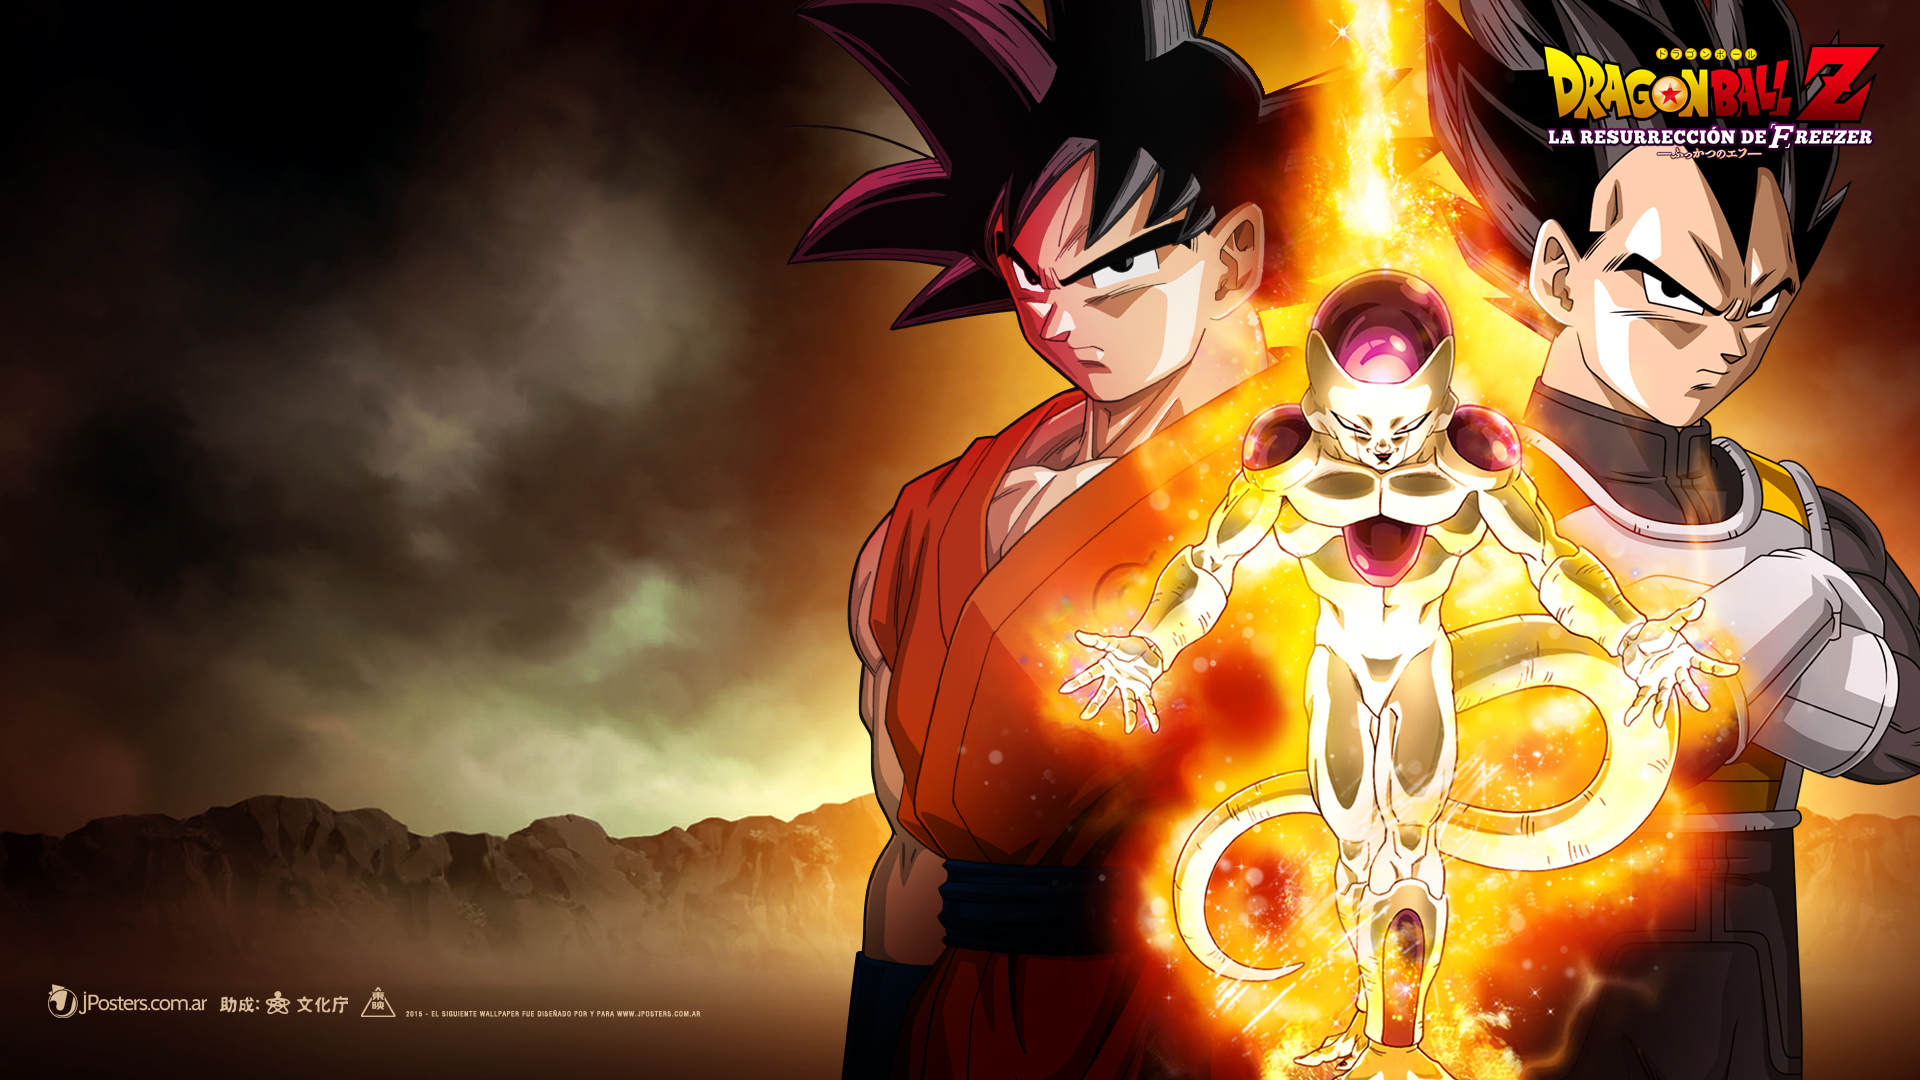 Wallpaper para DRAGON BALL Z LA RESURRECCIN DE FREEZER Diferentes 1920x1080